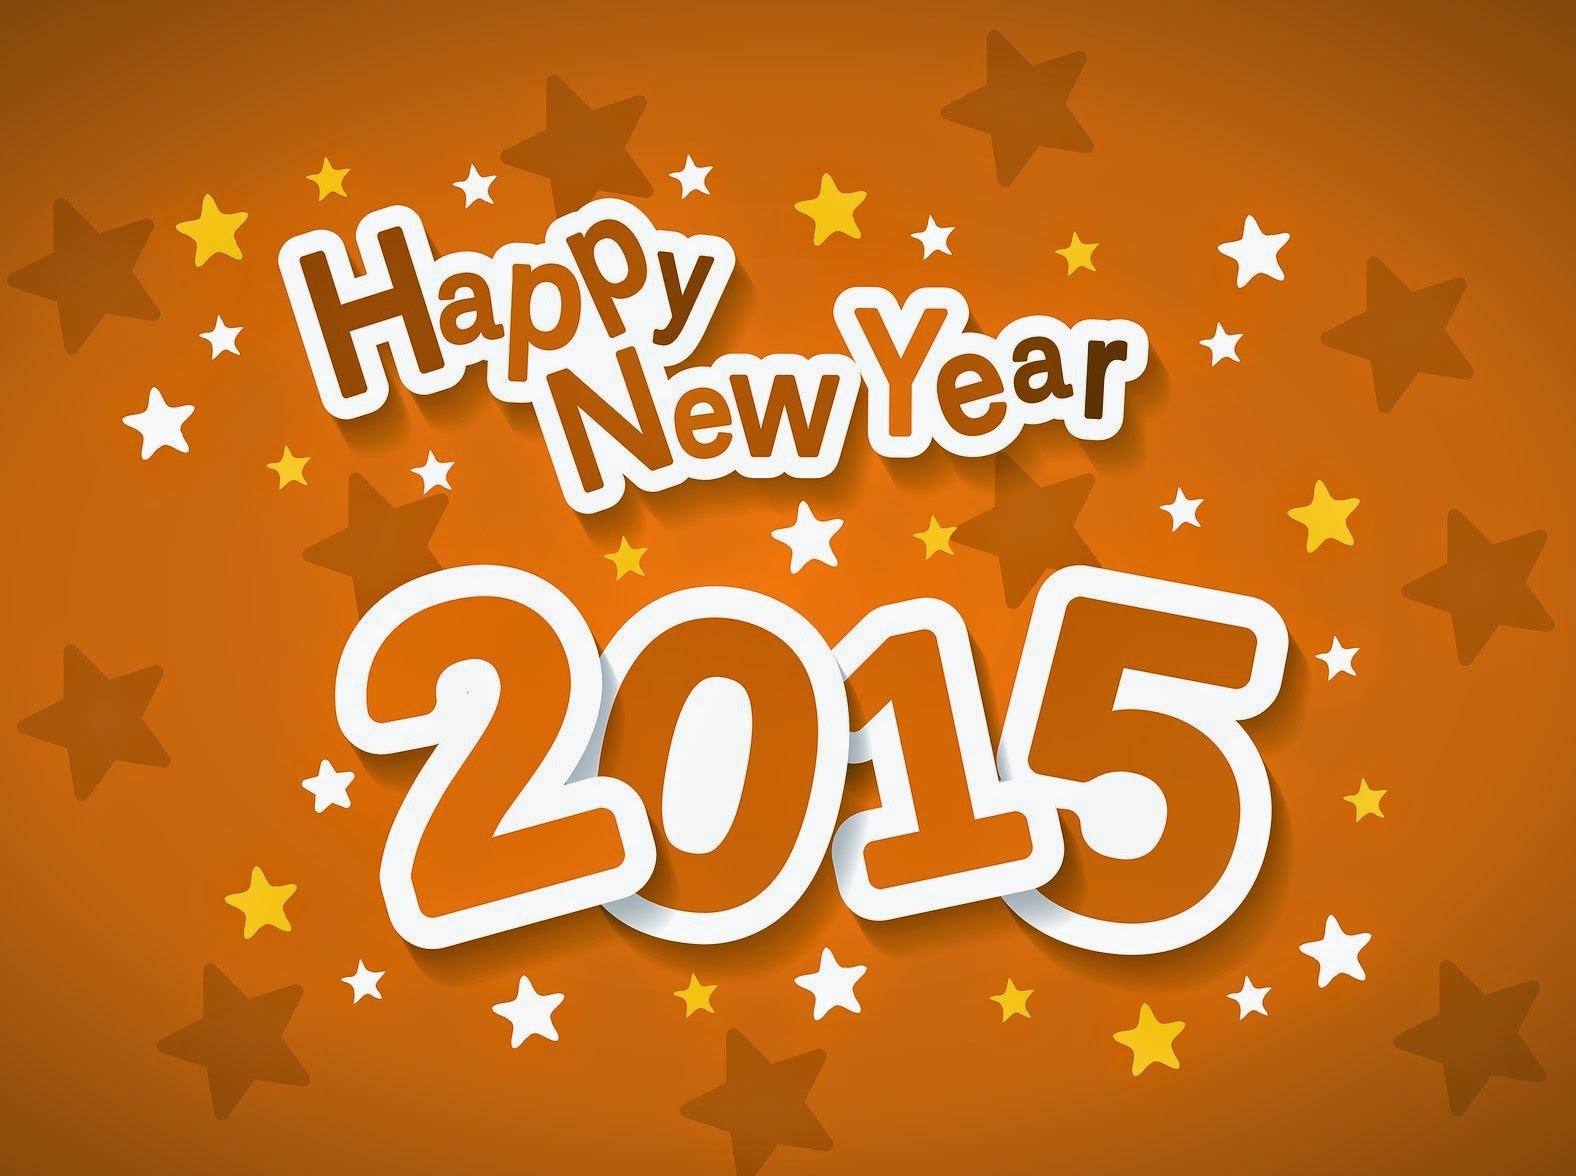 Happy New Year 2015 Wishes Quotes Messages To Use On Whatsapp